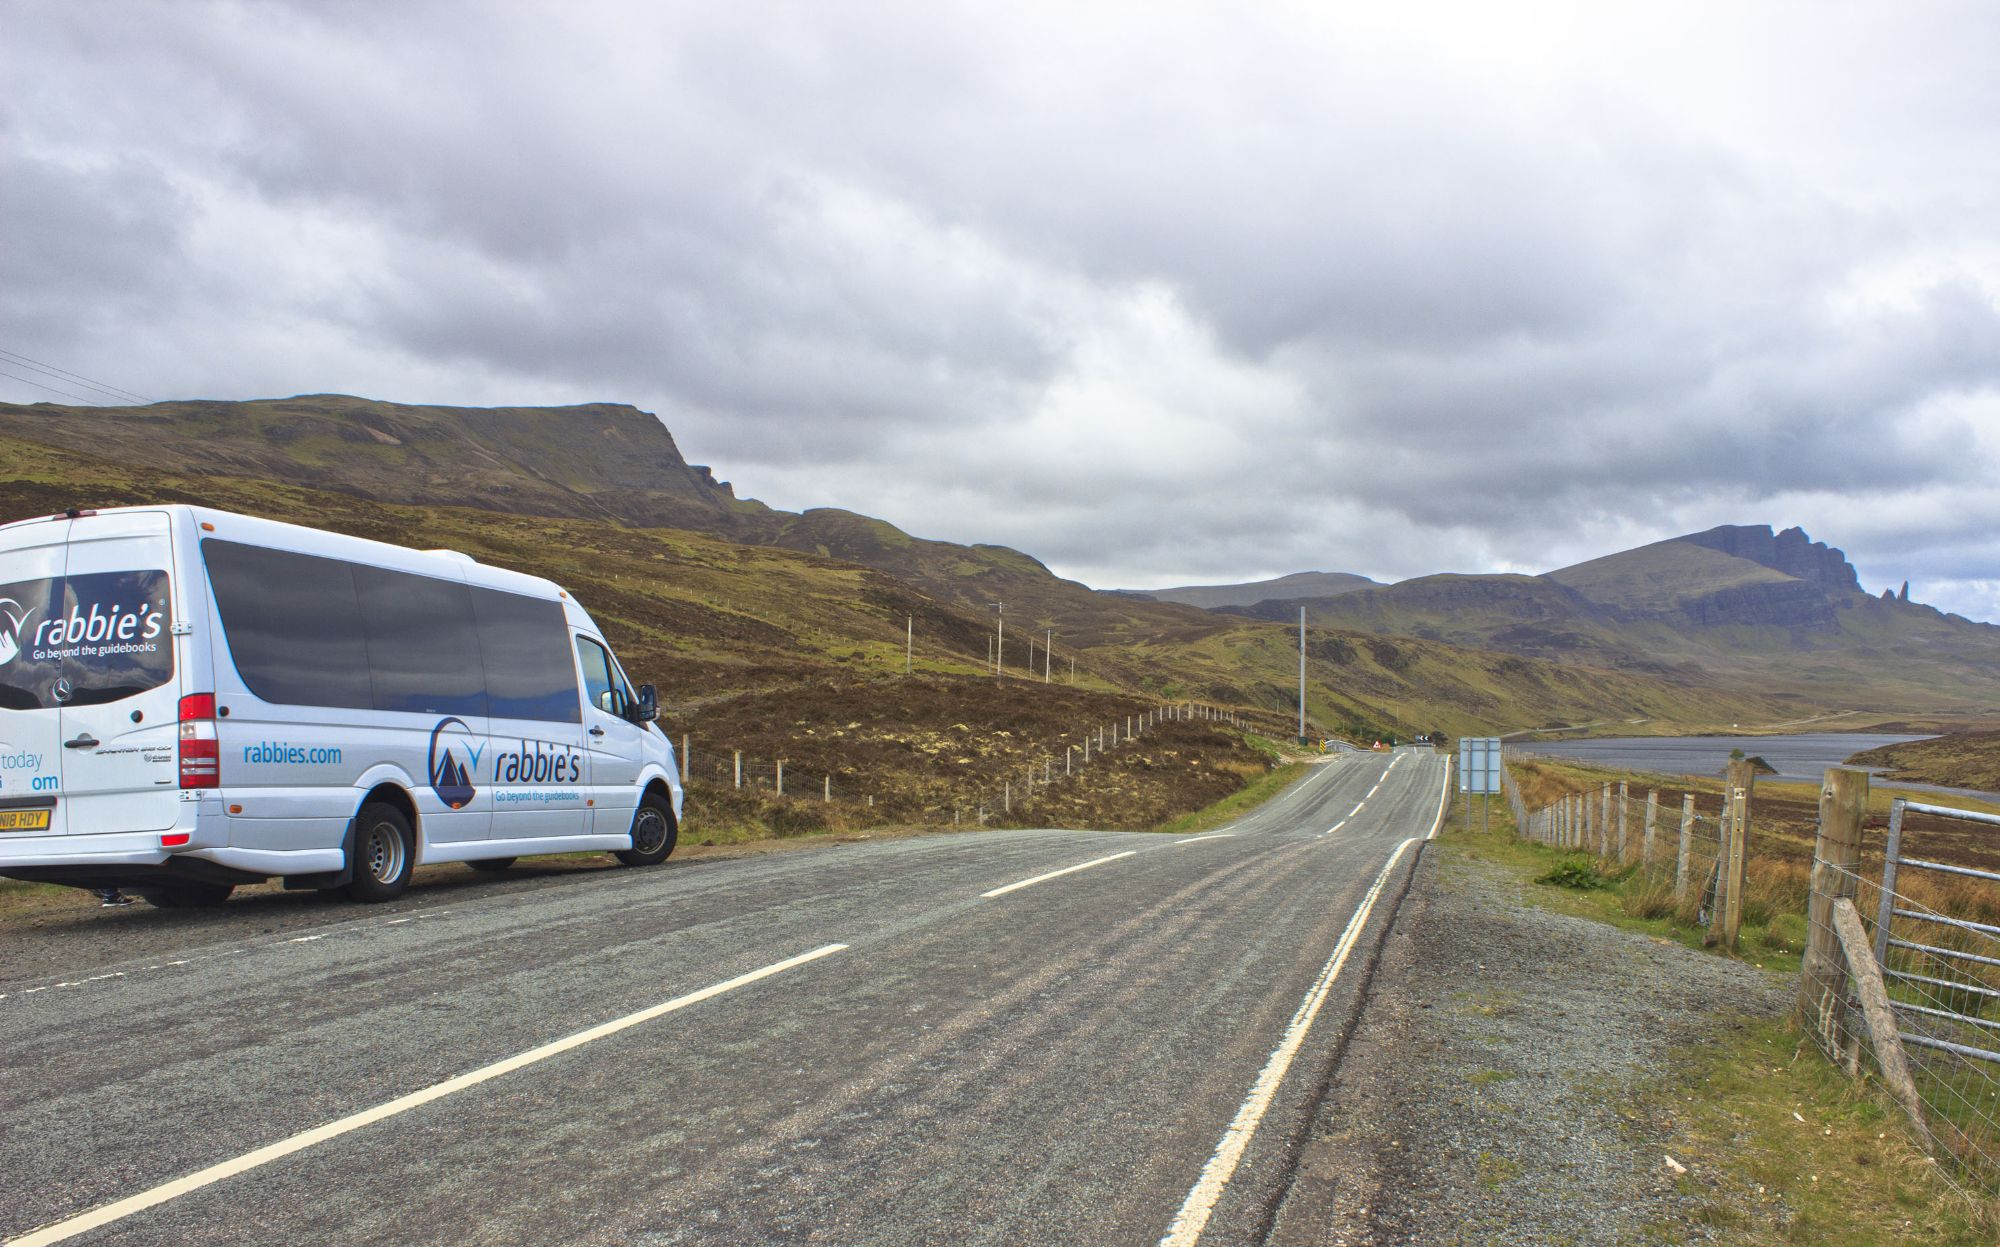 On our way to Trotternish!